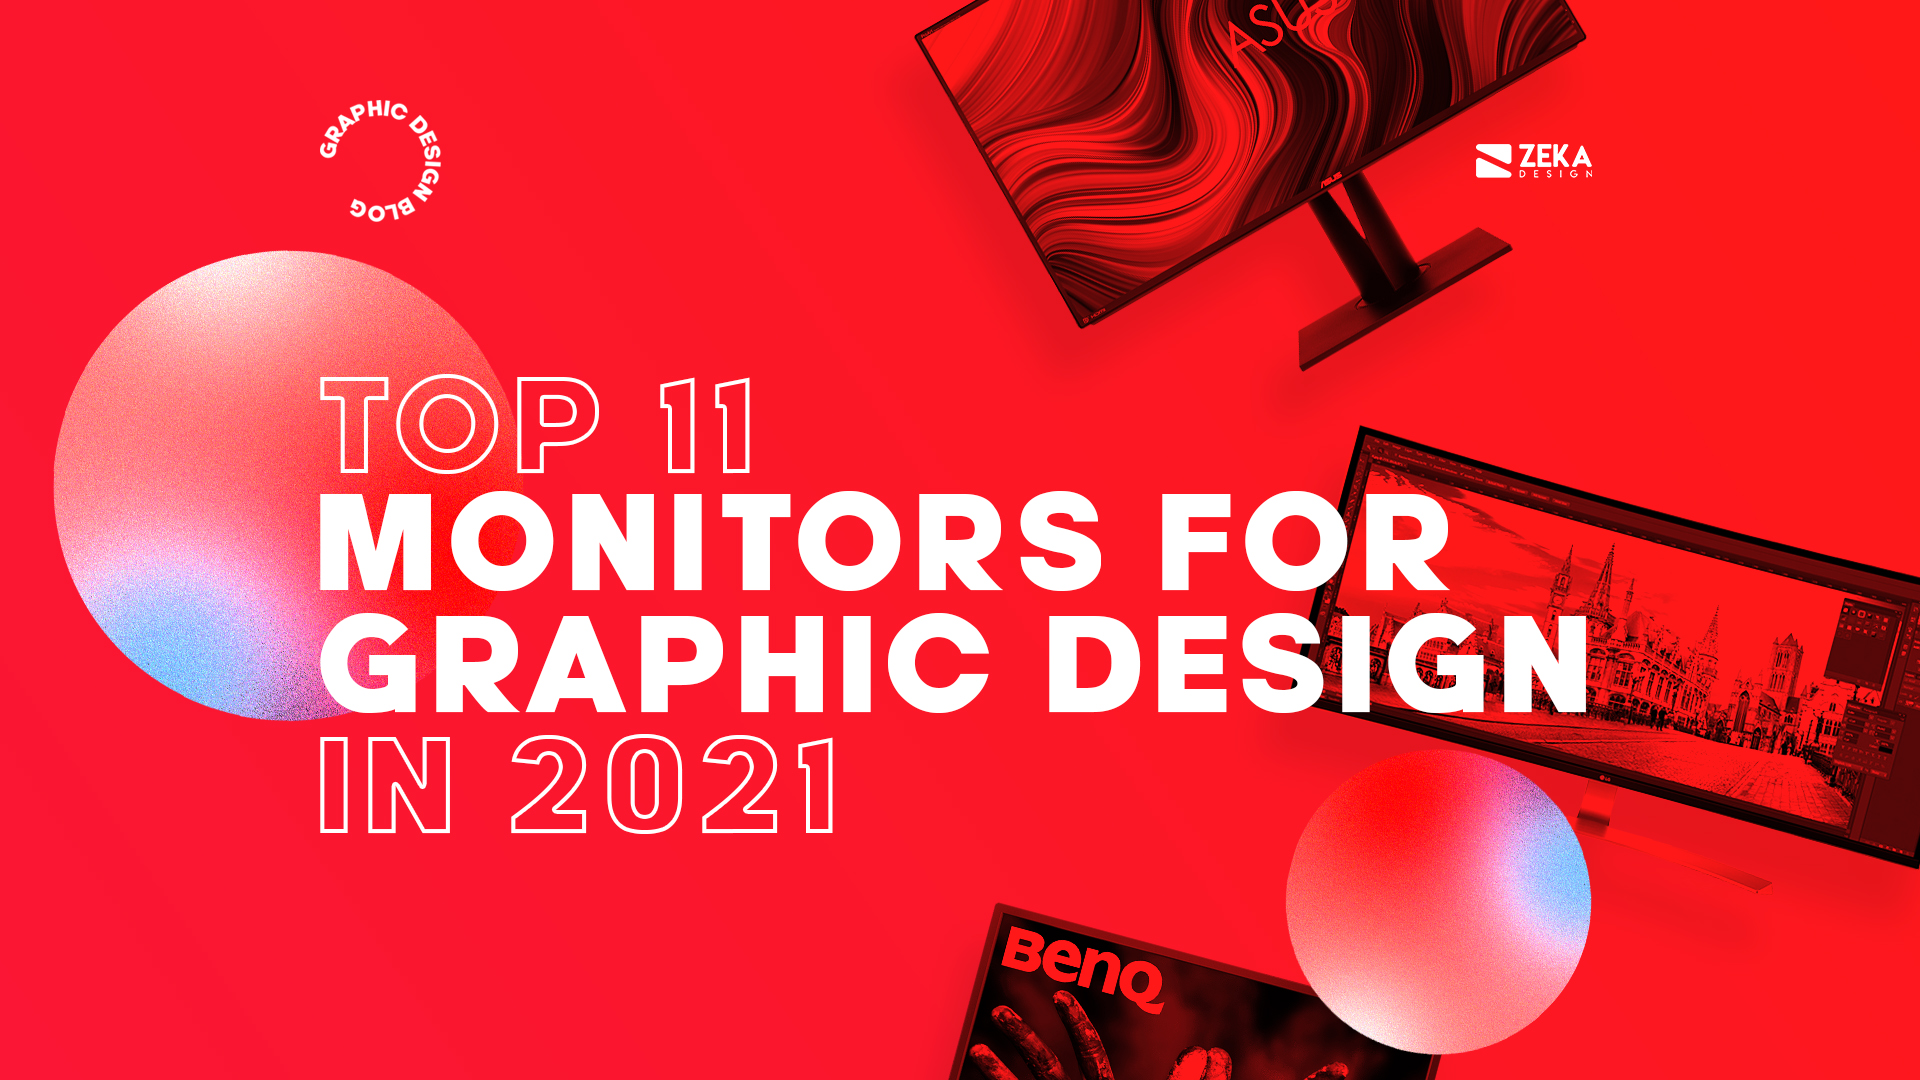 Best Monitors for Graphic Design in 2021